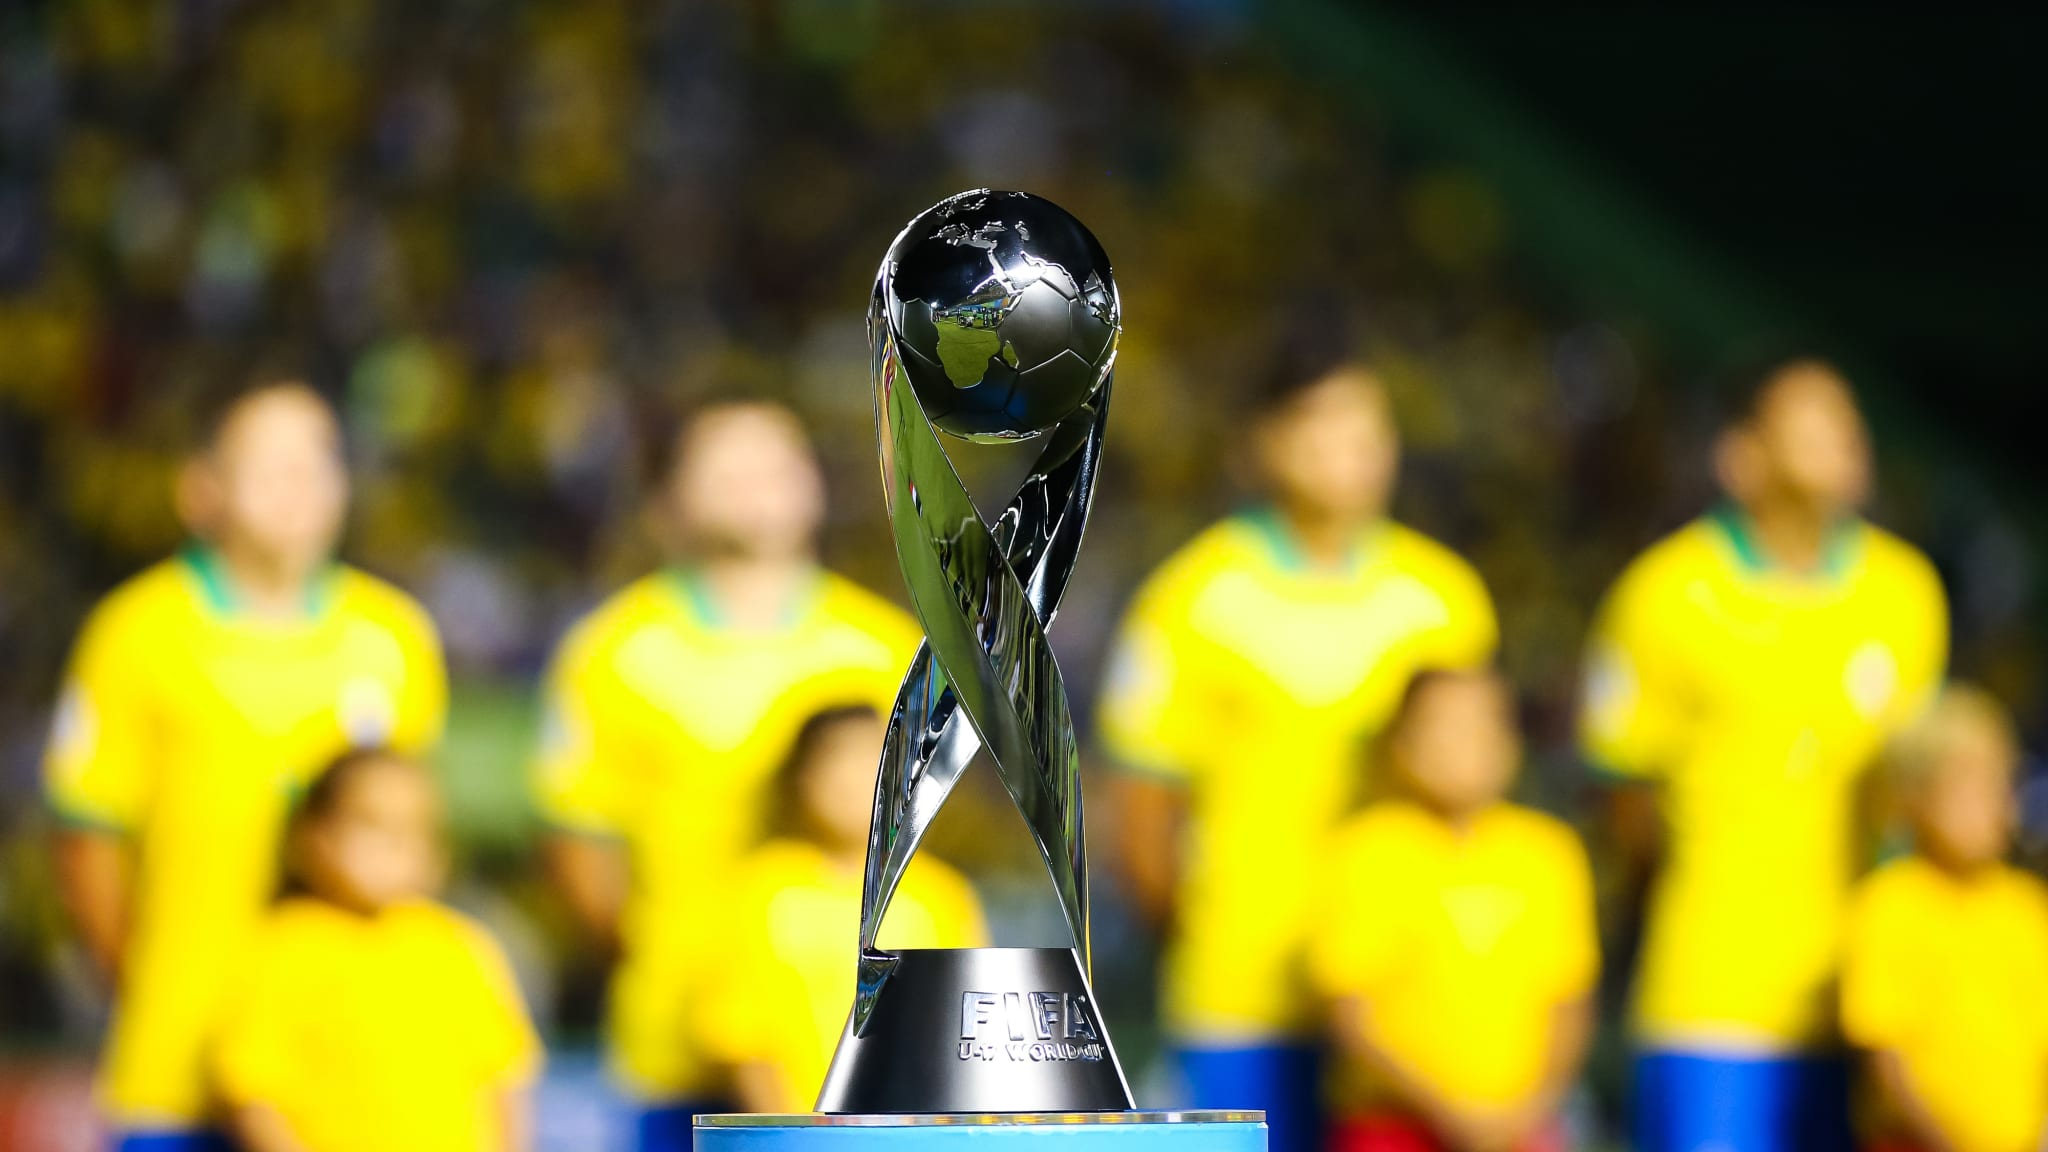 Mexico v Brazil - Final - FIFA U-17 World Cup Brazil 2019 - Detailed view of the World Cup Trophy as the Brazil side line up